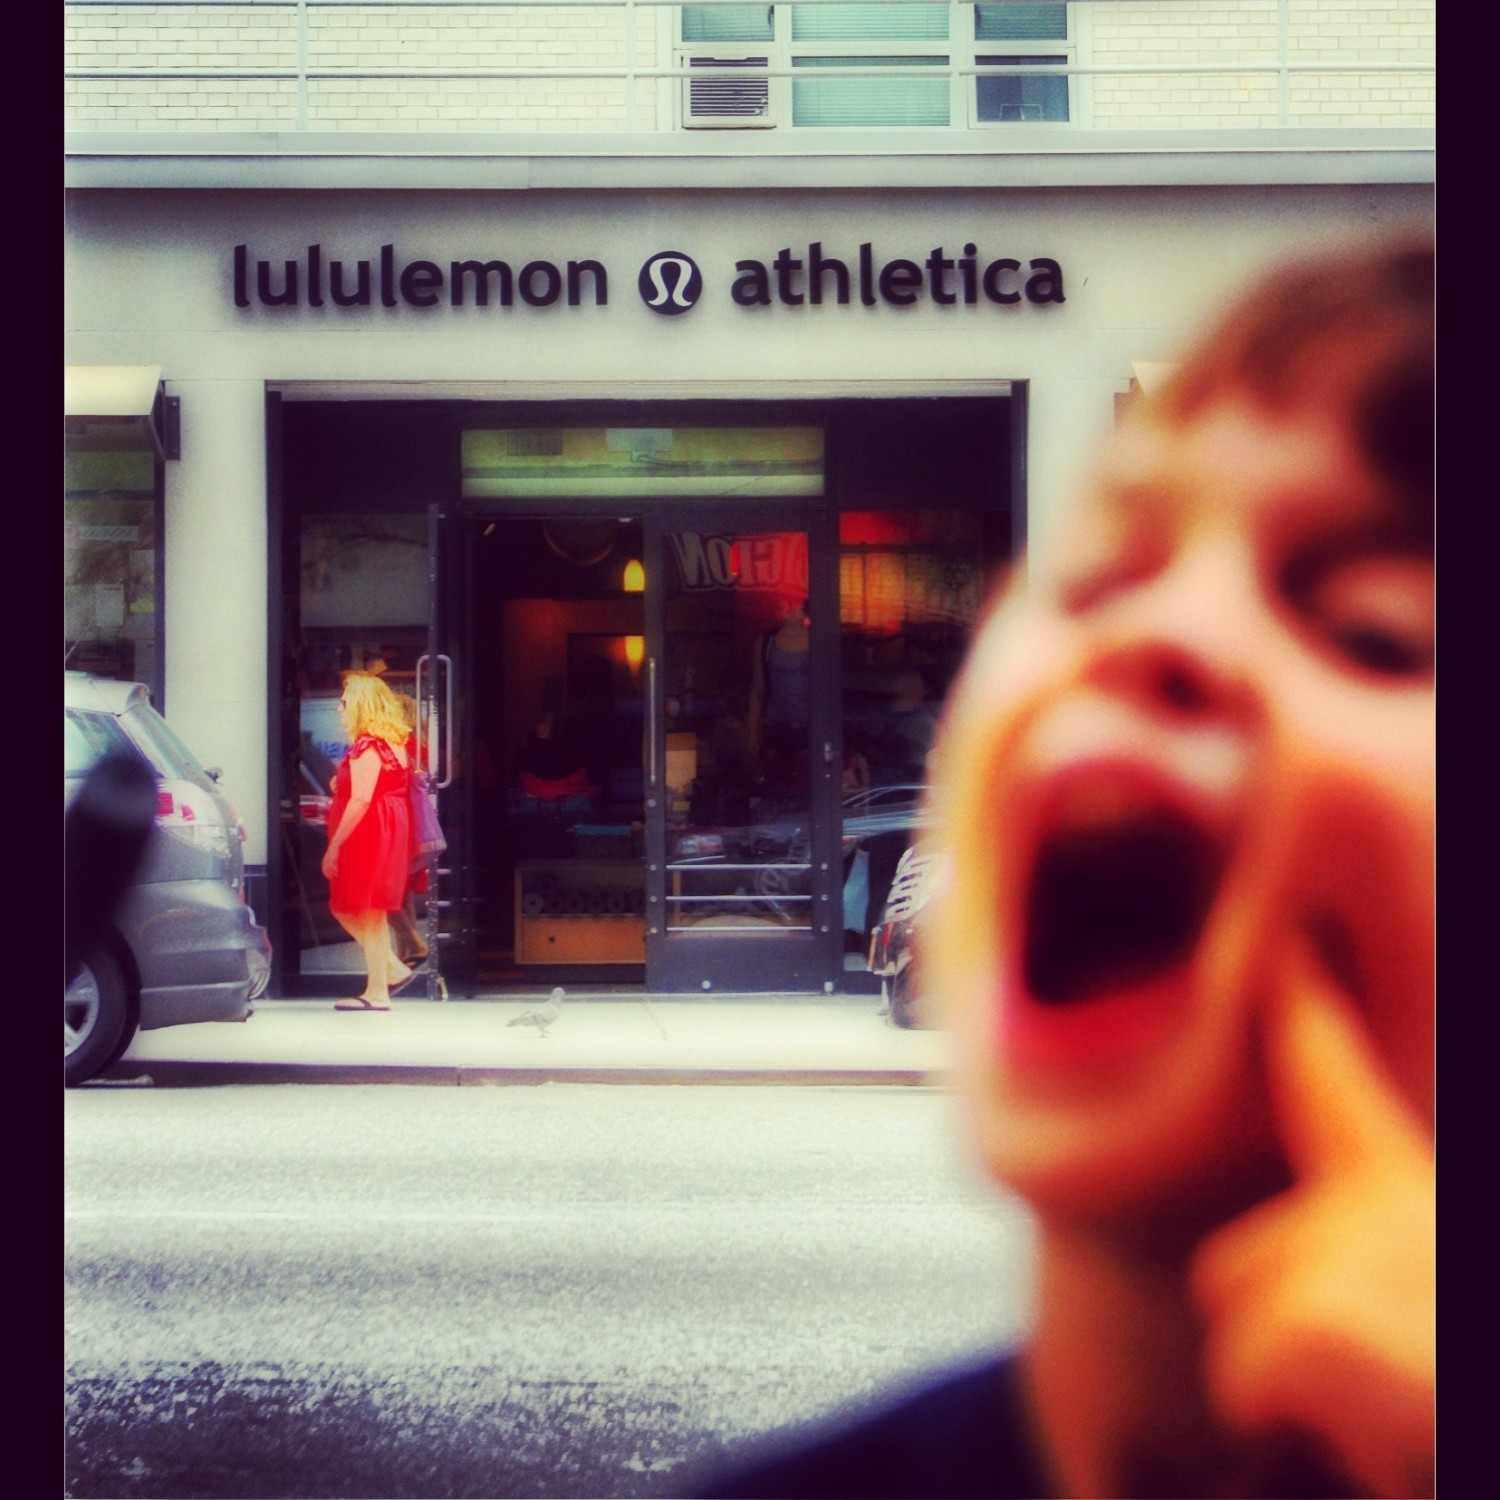 lululemon then on to the zoo